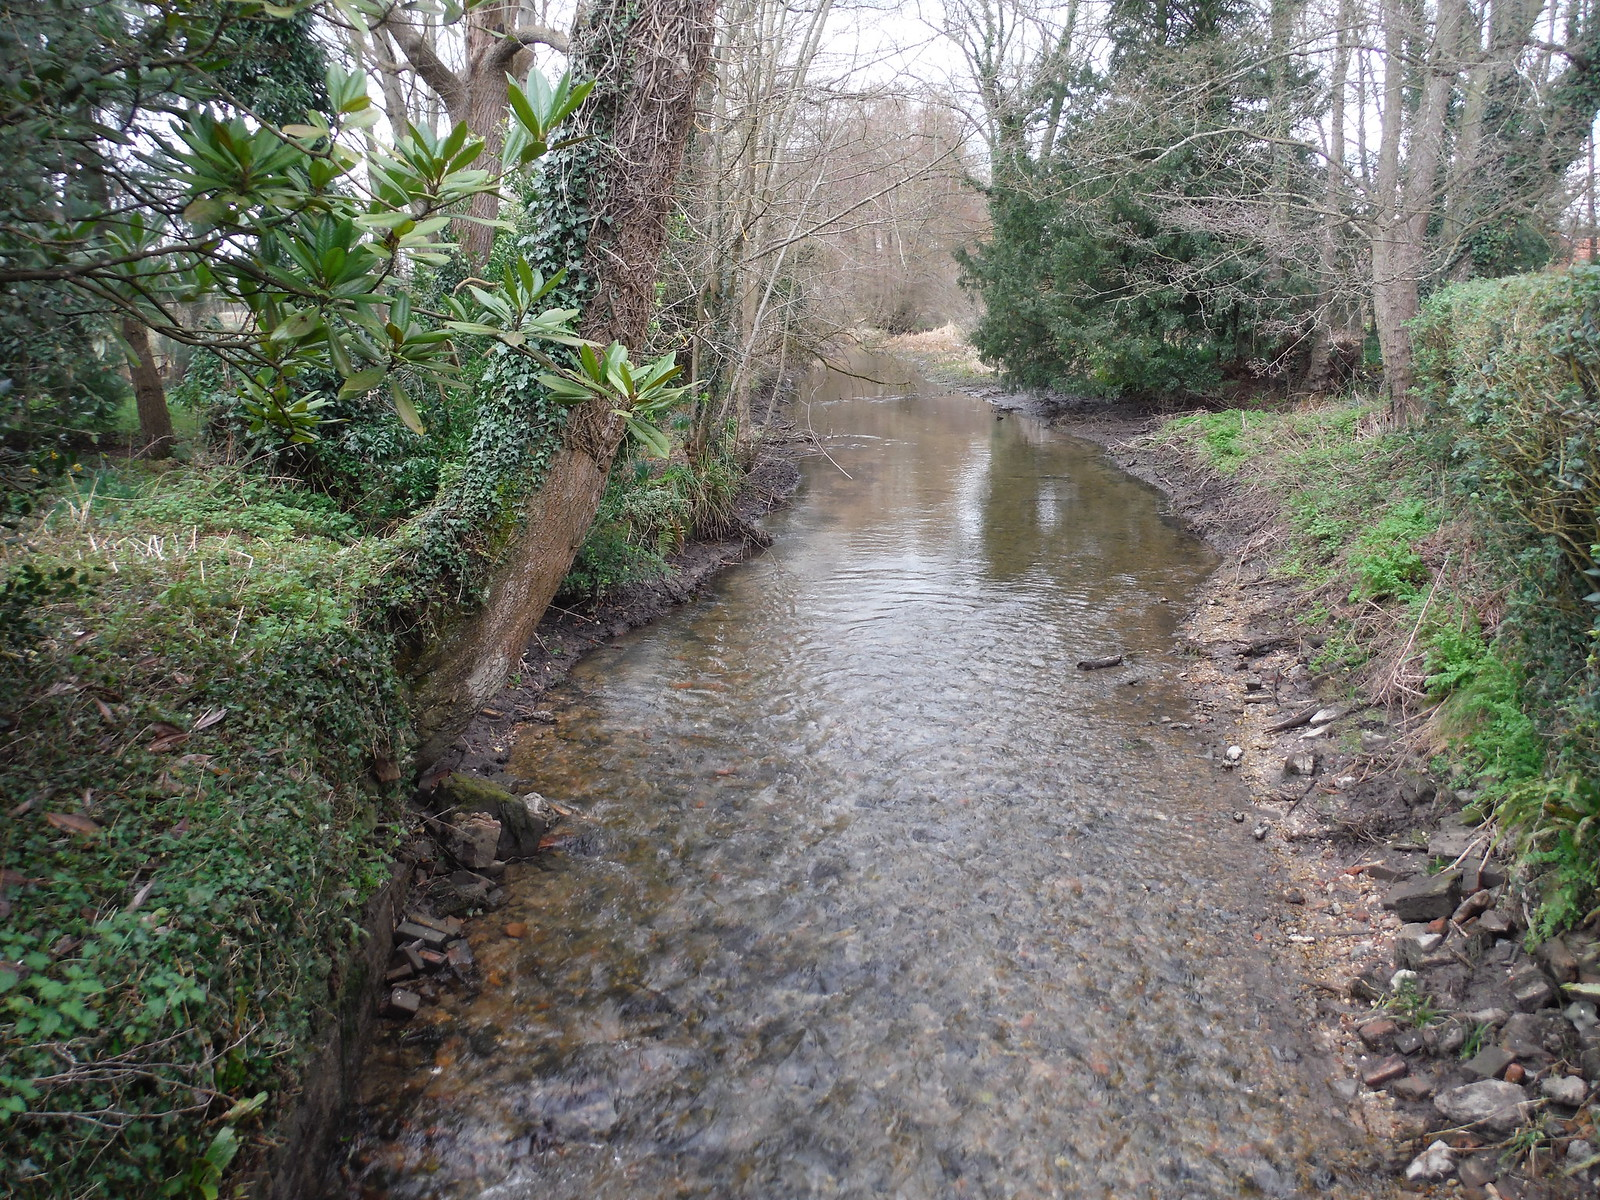 The Pang River, Stanford Dingley SWC Walk 117 Aldermaston to Woolhampton (via Stanford Dingley)